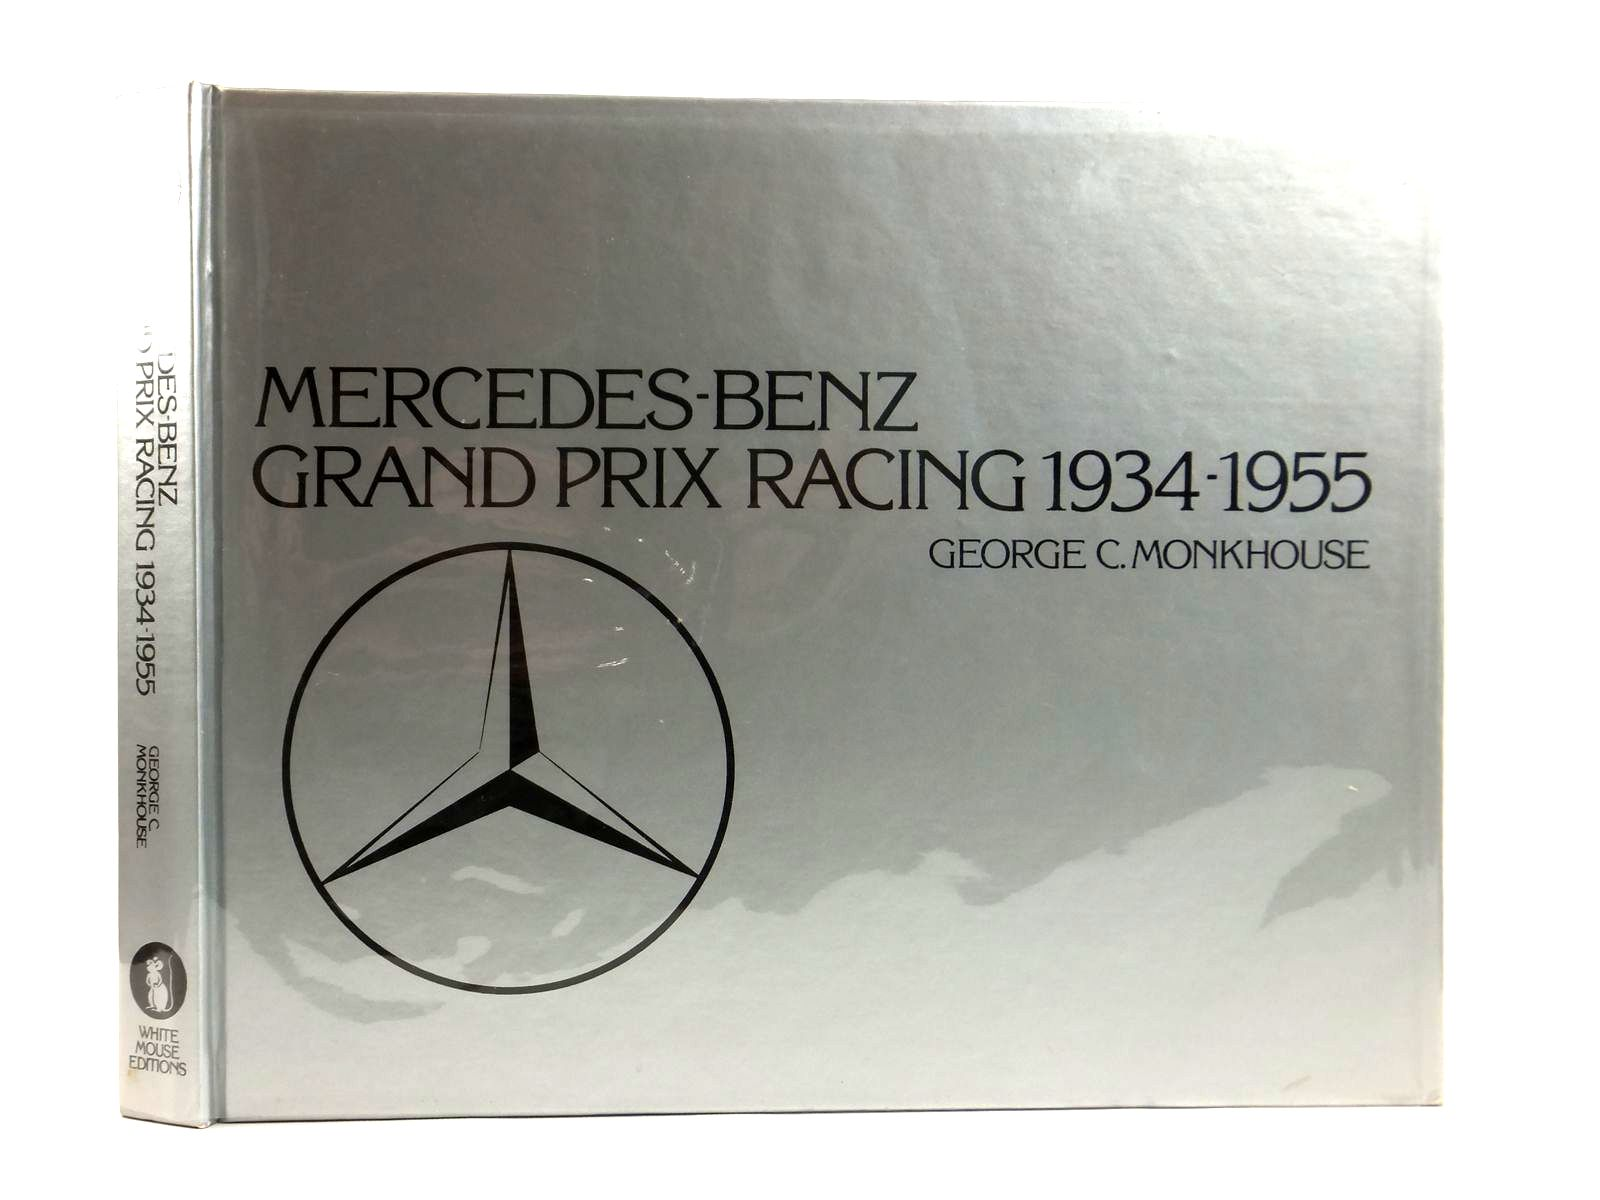 Photo of MERCEDES-BENZ GRAND PRIX RACING 1934 - 1955 written by Monkhouse, George published by White Mouse (STOCK CODE: 1608589)  for sale by Stella & Rose's Books